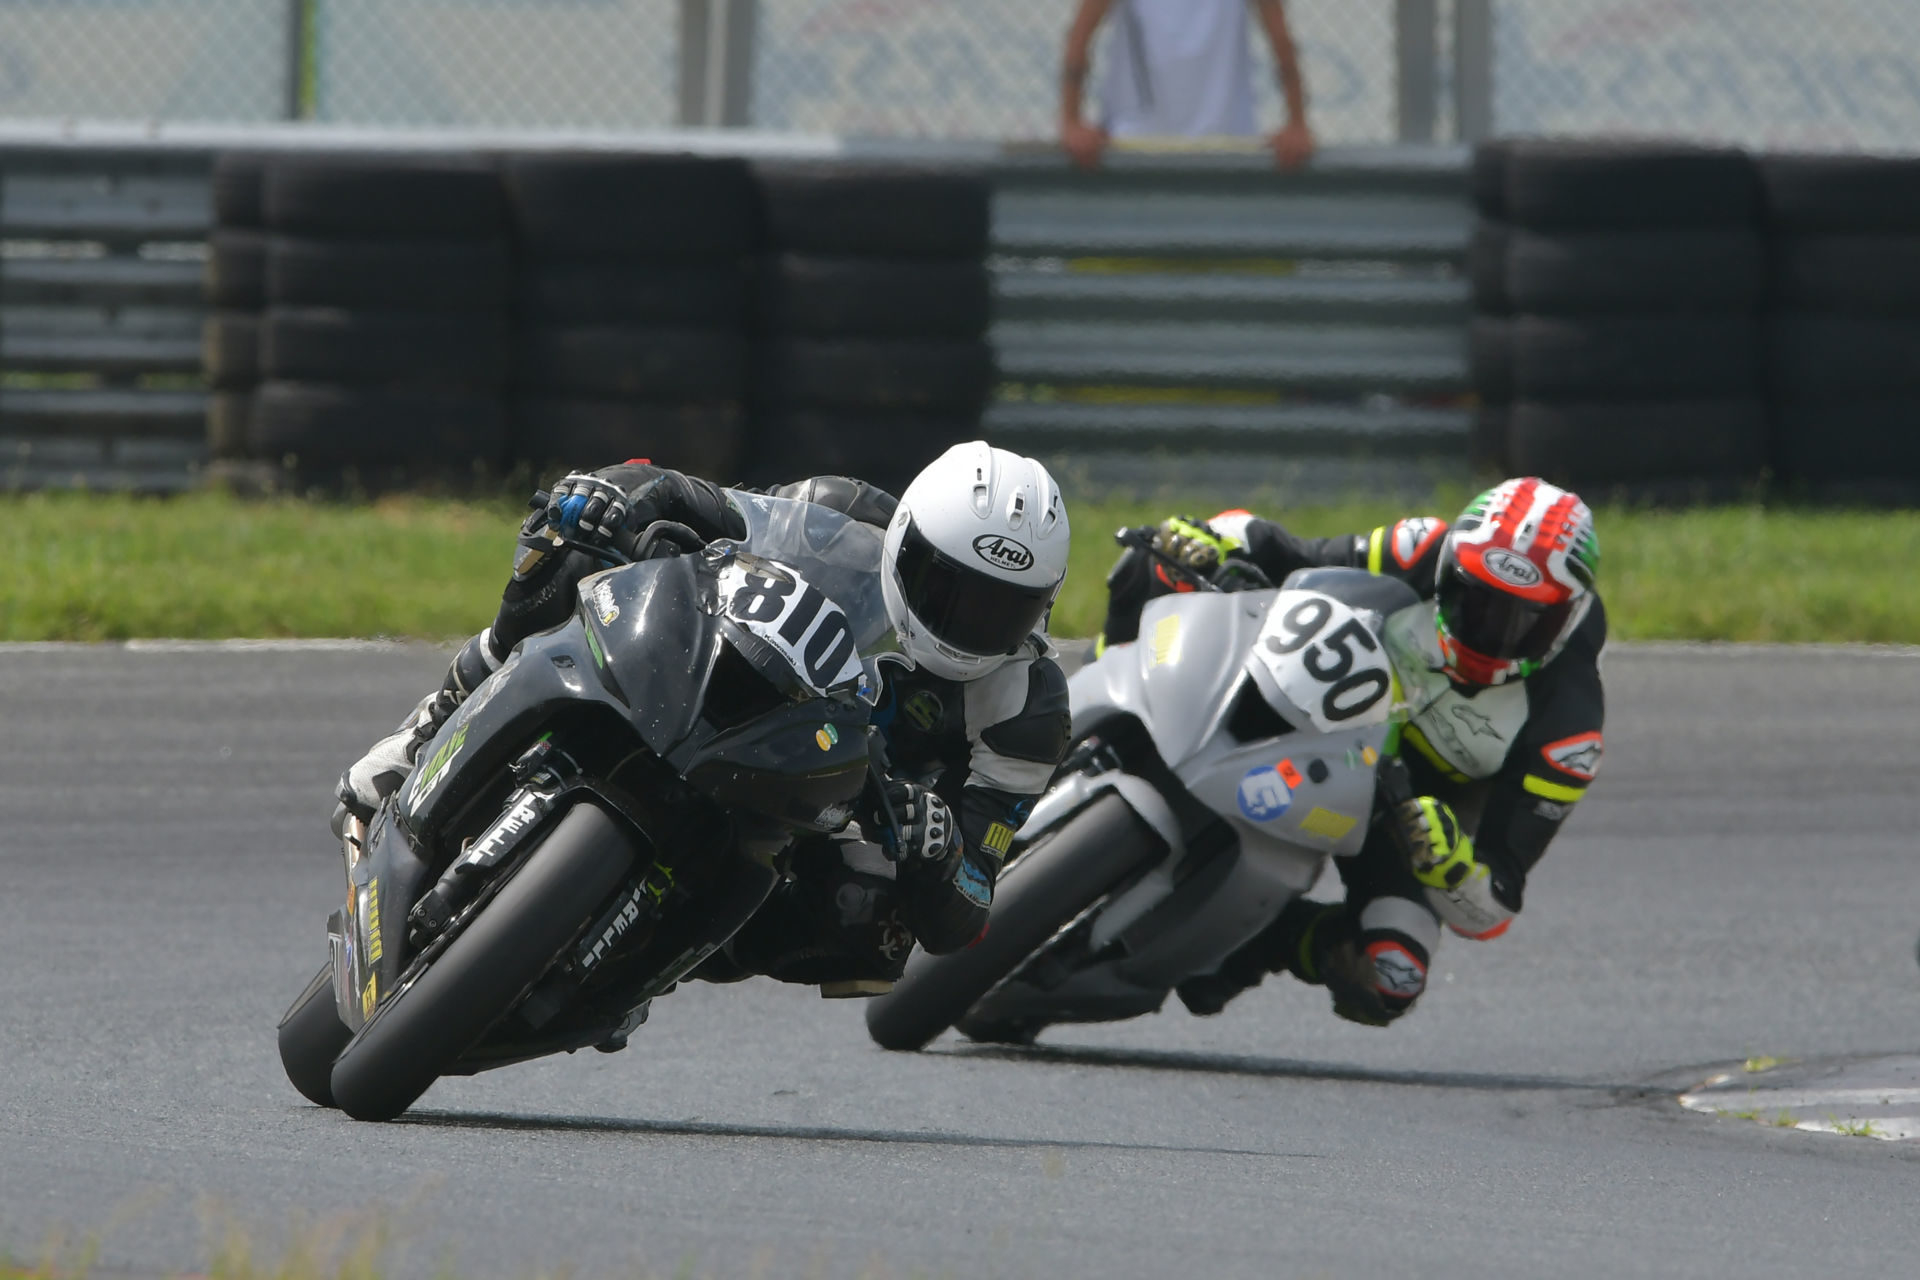 Jeremy Brinker (810) and Jeff Schoff (950) fight for the lead in the Motogladiator Superbike 1000cc race at NJMP. Photo by The SB Image, courtesy of Motogladiator.